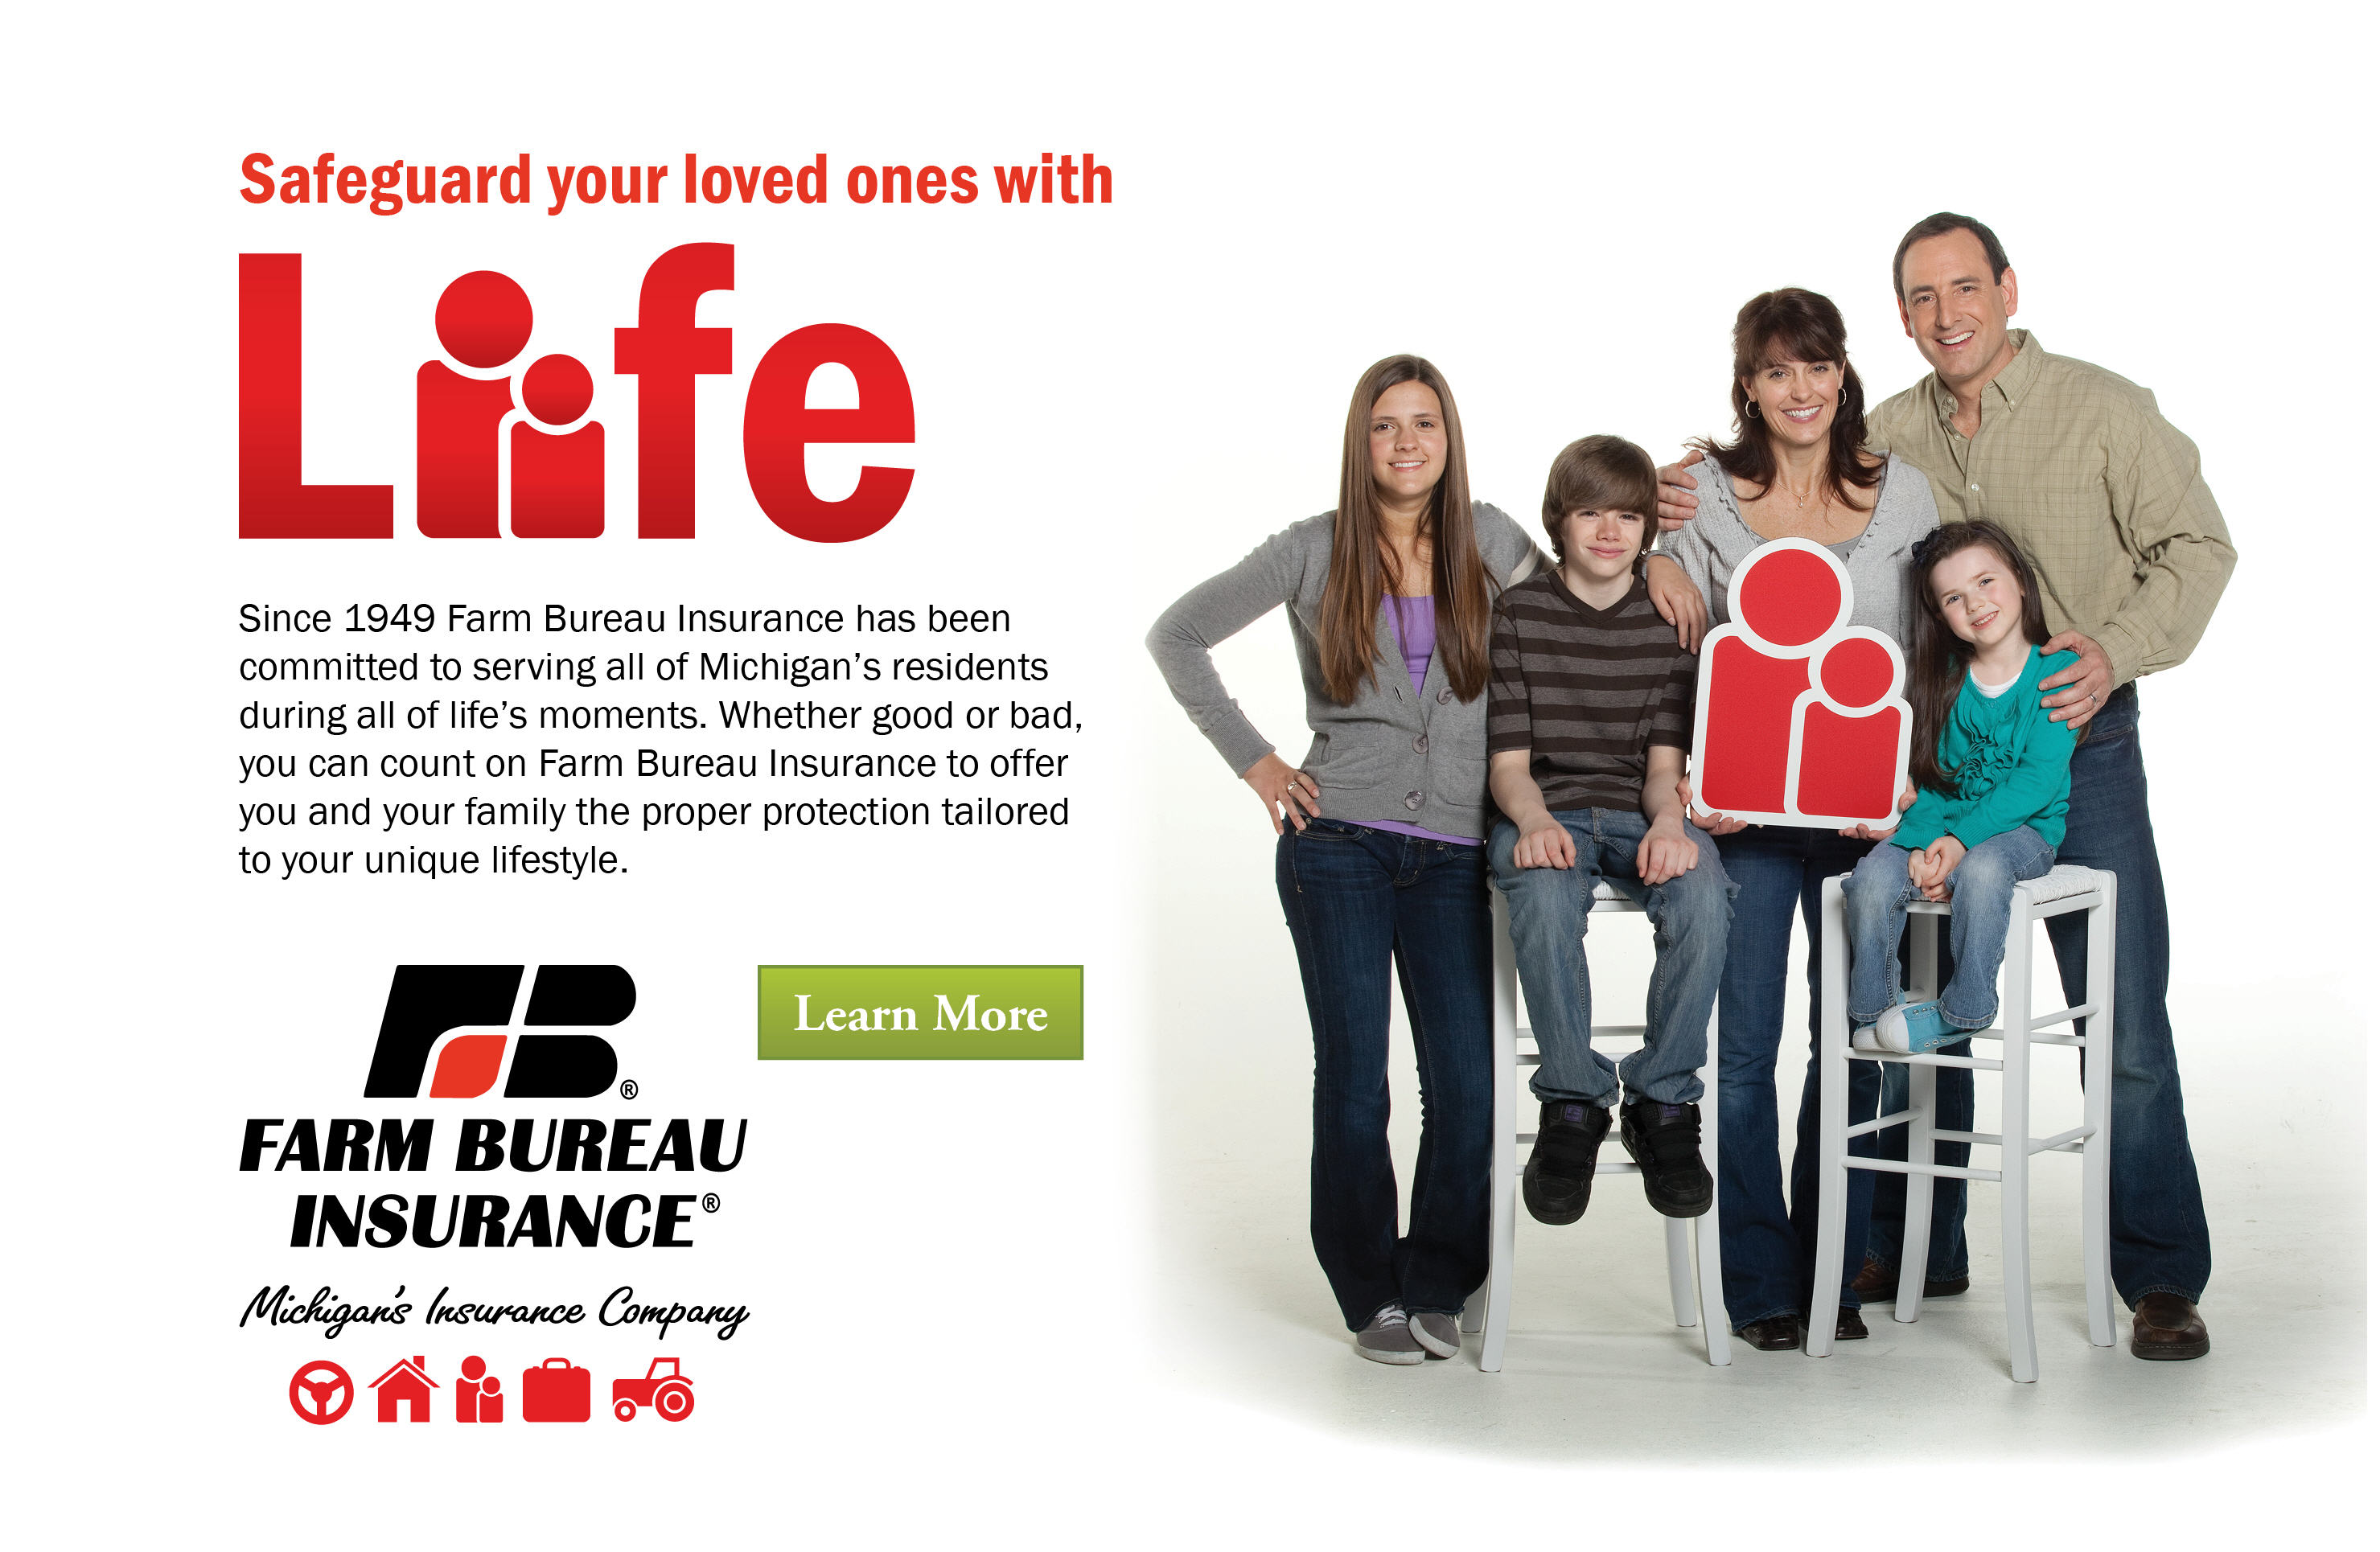 Safeguard your loved ones with life insurance.